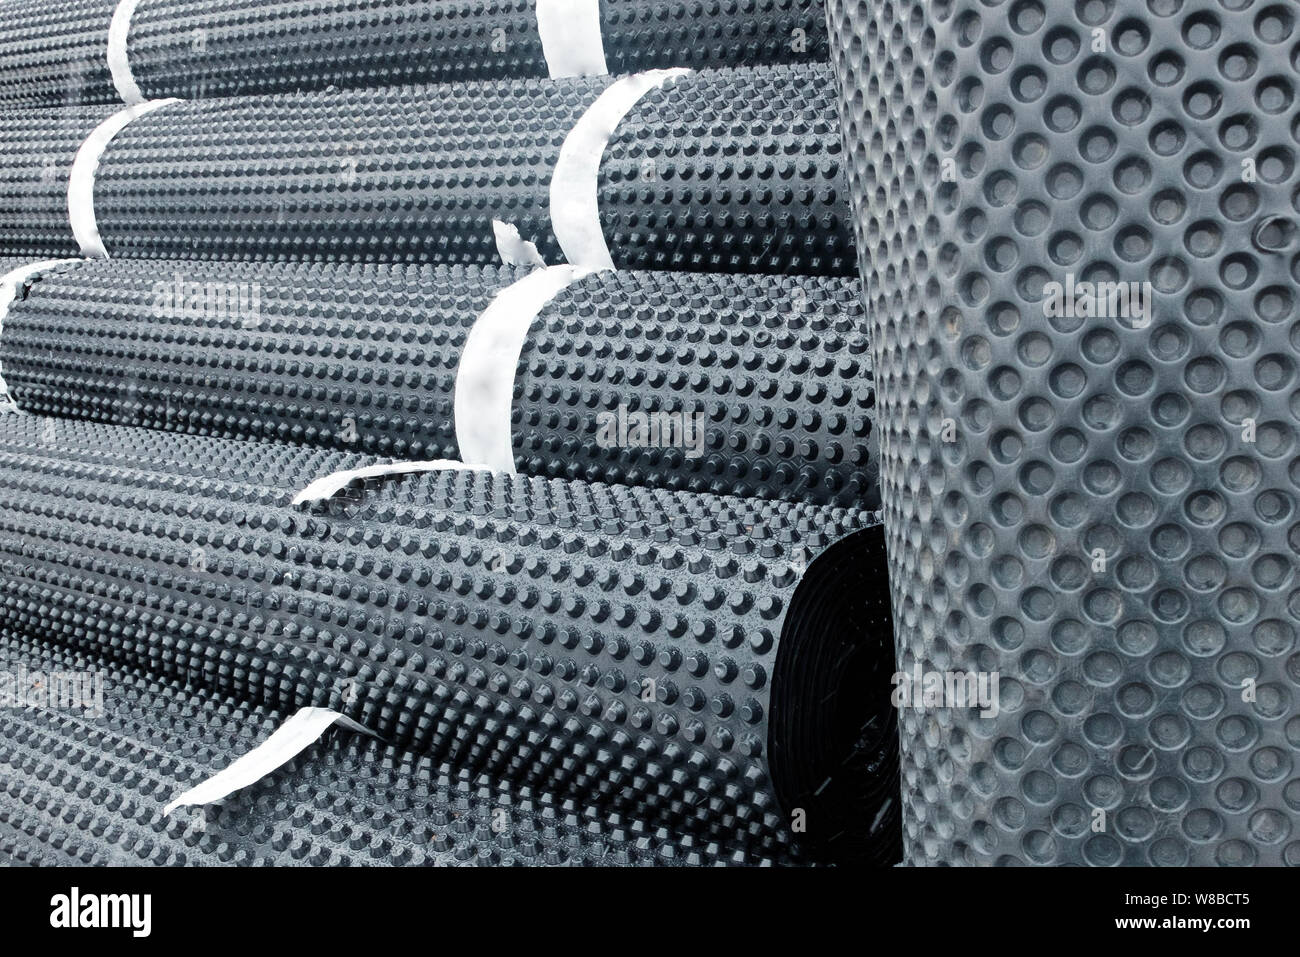 Flat Roofing Membrane Stock Photos & Flat Roofing Membrane